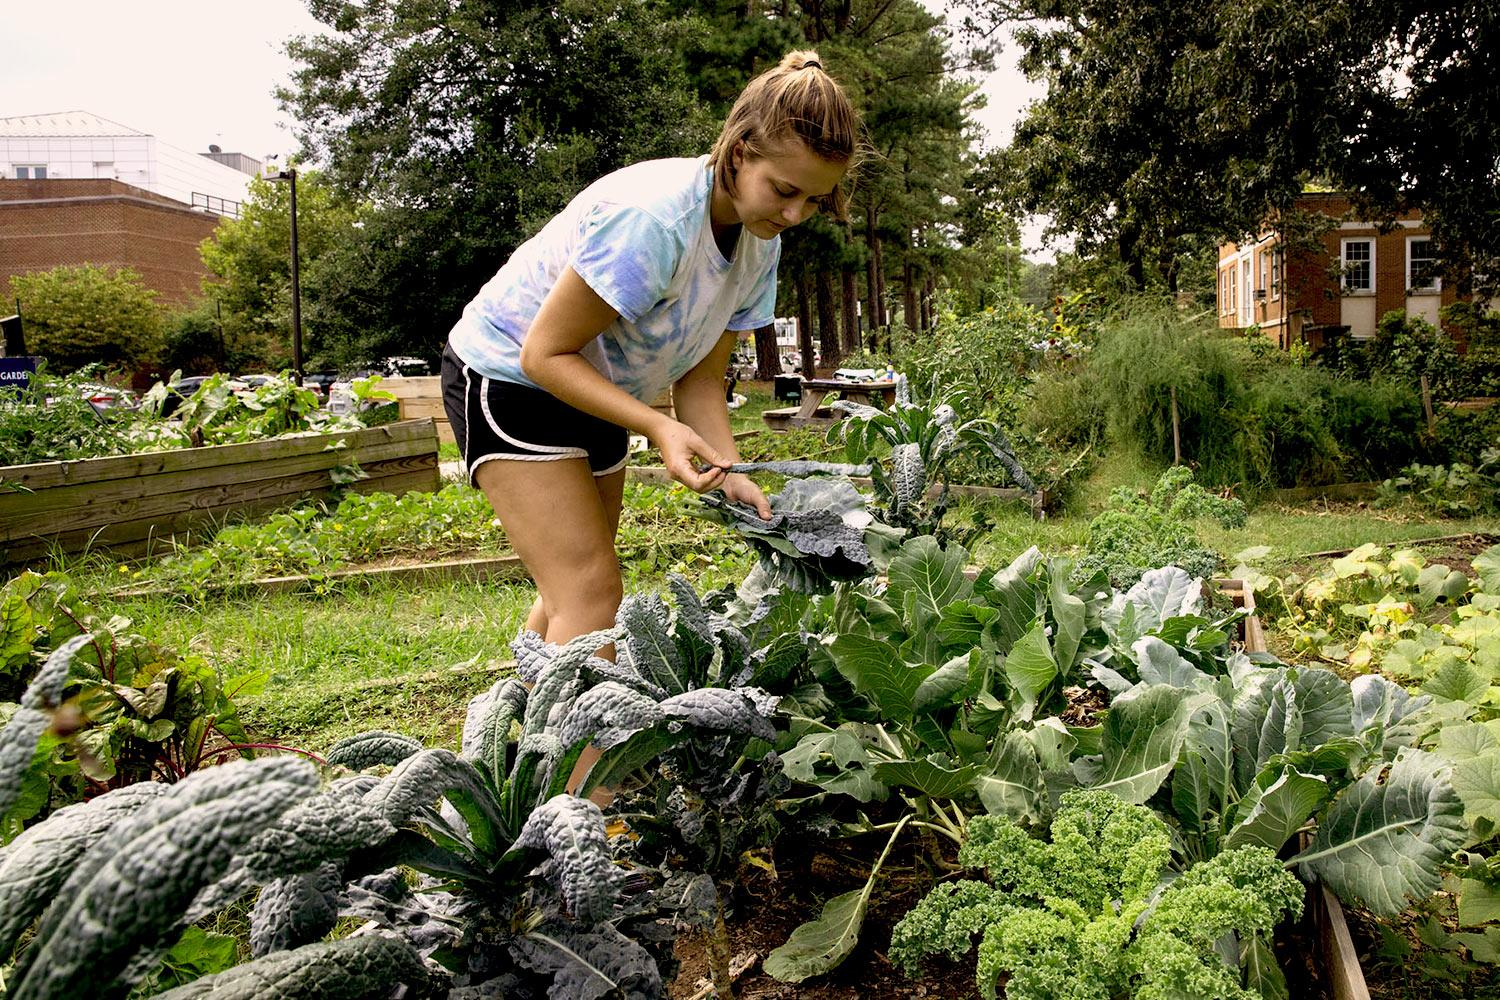 Rising third-year Elise Watt spent her summer managing a garden through a Charlottesville Sustainable Agriculture Internship. (Photos by Dan Addison / University Communications)